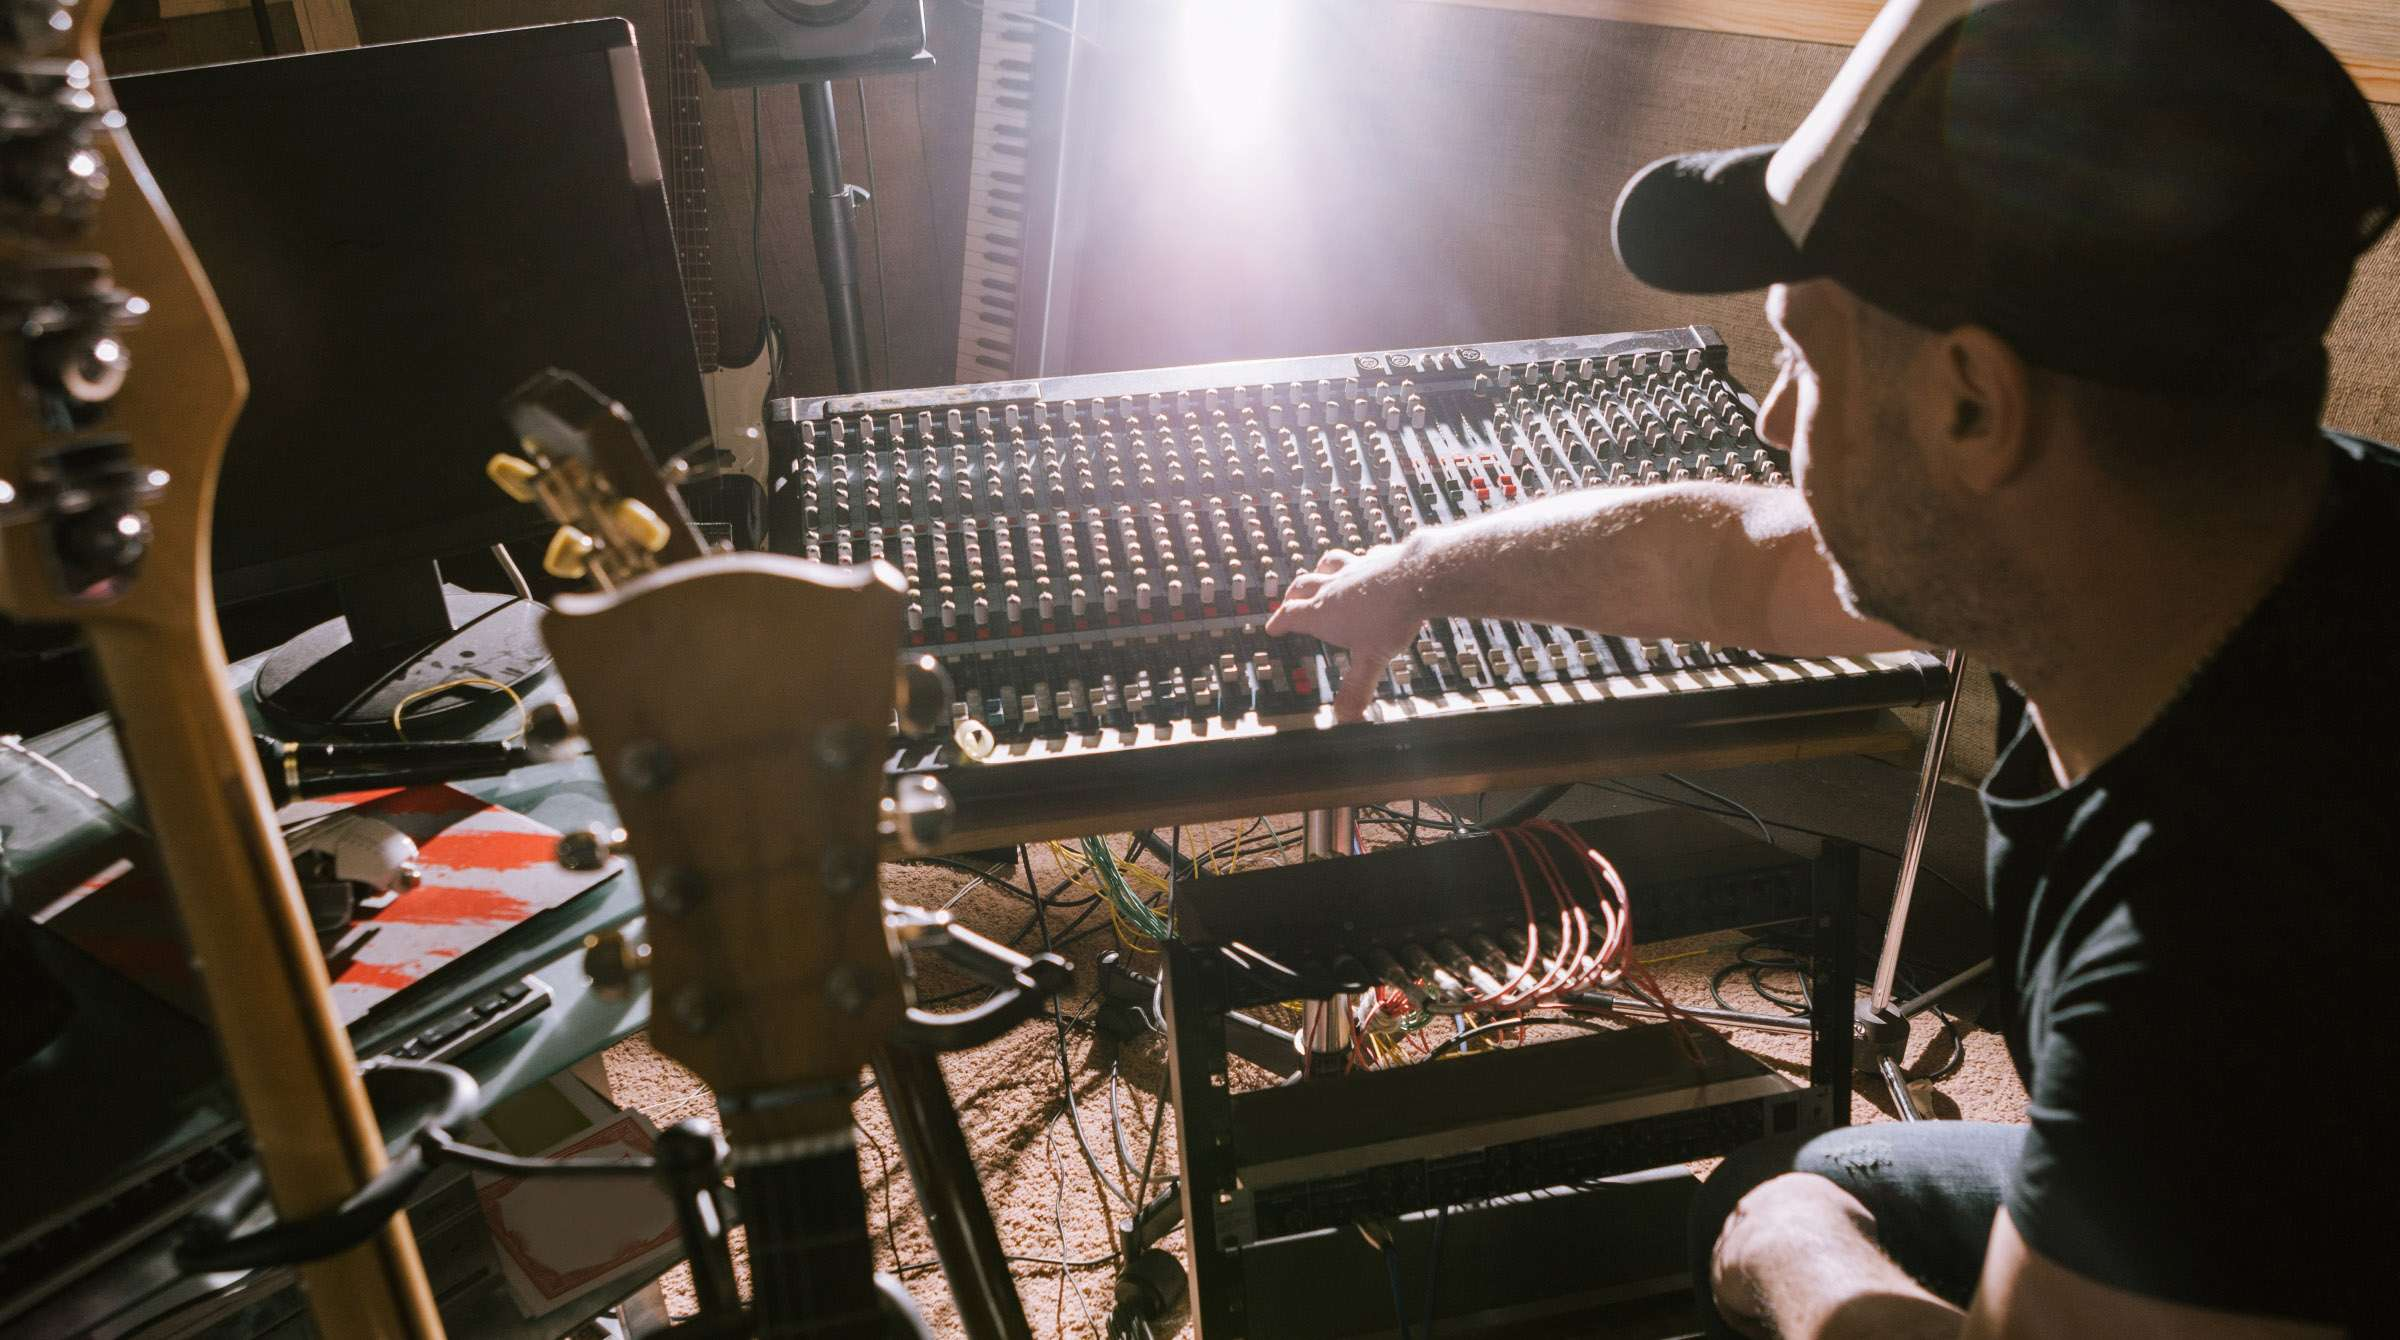 Lo-Fi in High Demand: Making Music With an Indie Edge | Pond5